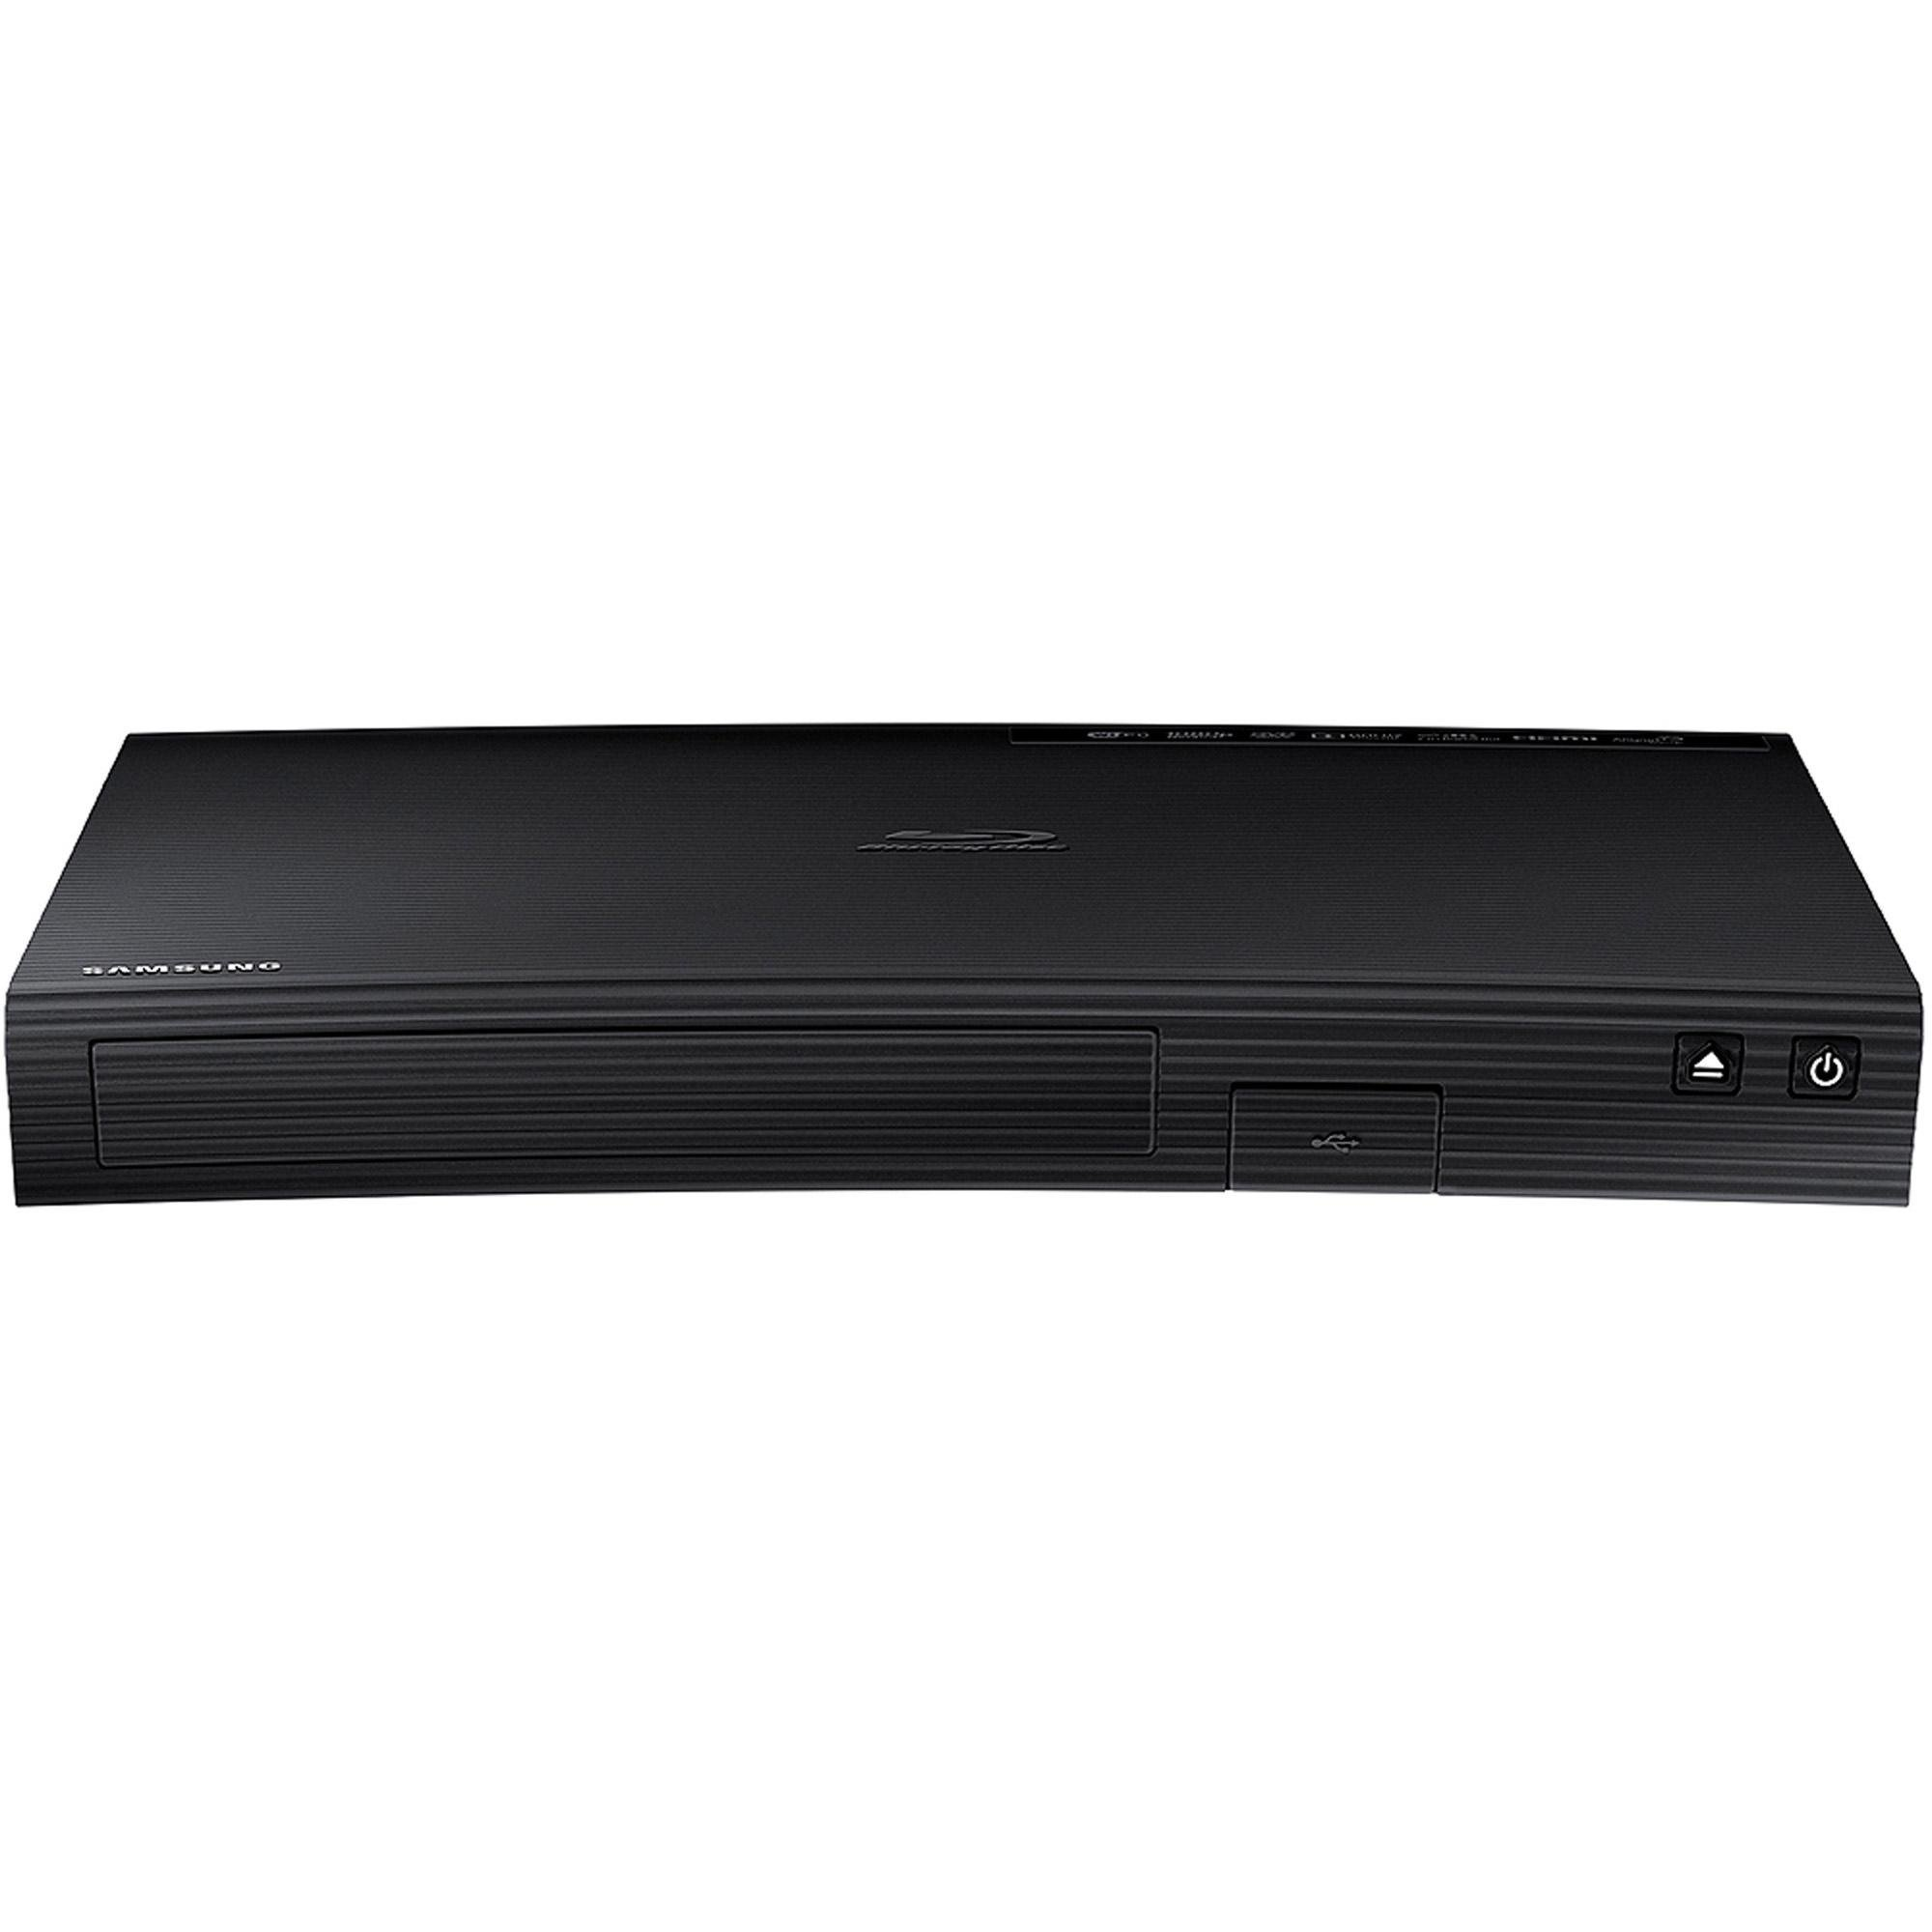 Samsung Blu-ray DVD Disc Player With Built-in Wi-Fi 1080p & Full HD Upconversion, Plays Blu-ray Discs, DVDs & CDs, Plus CubeCable 6Ft High Speed HDMI Cable, Black Finish (Certified Refurbished)